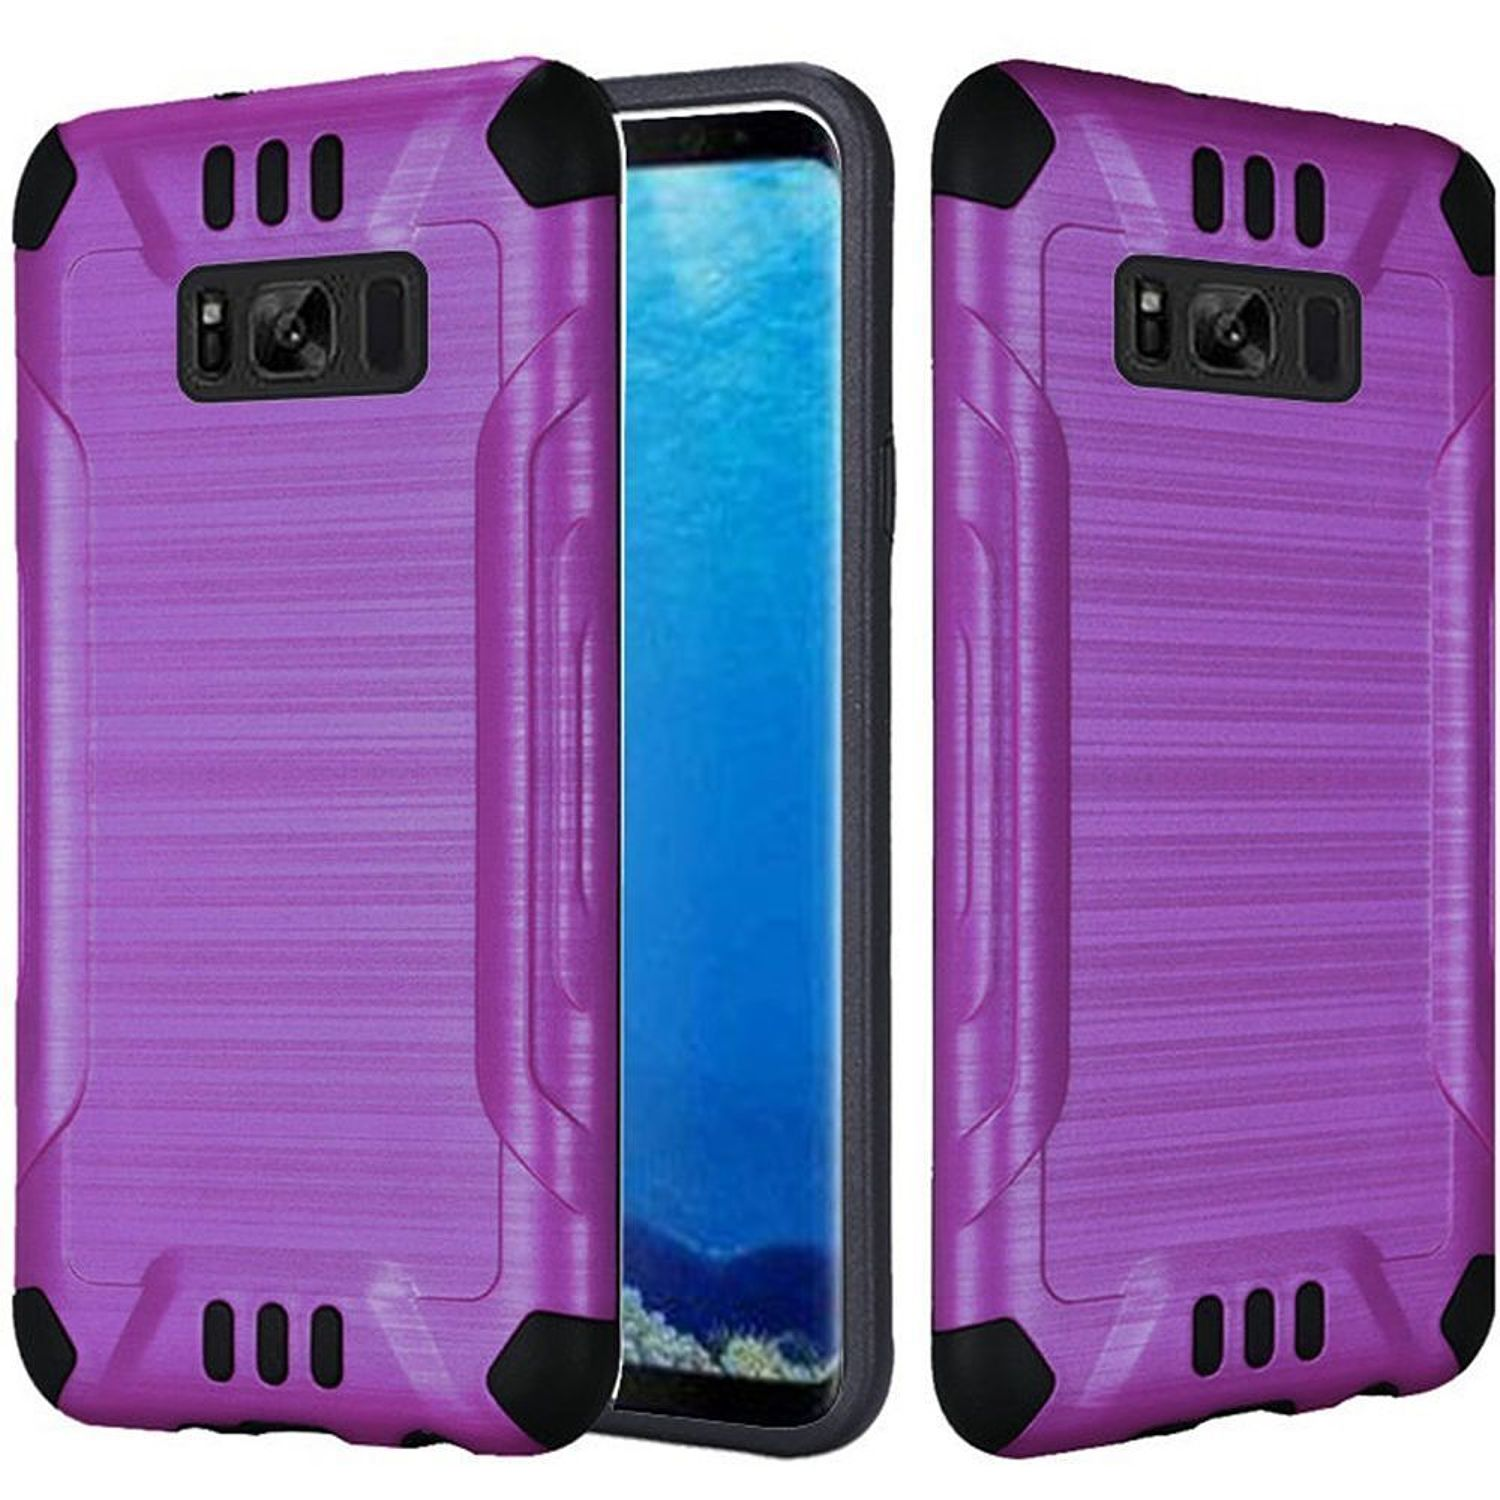 insten Slim Armor Dual Layer [Shock Absorbing] Hybrid Brushed Hard Plastic/Soft TPU Rubber Case Phone Cover For Samsung Galaxy S8, Purple/Black